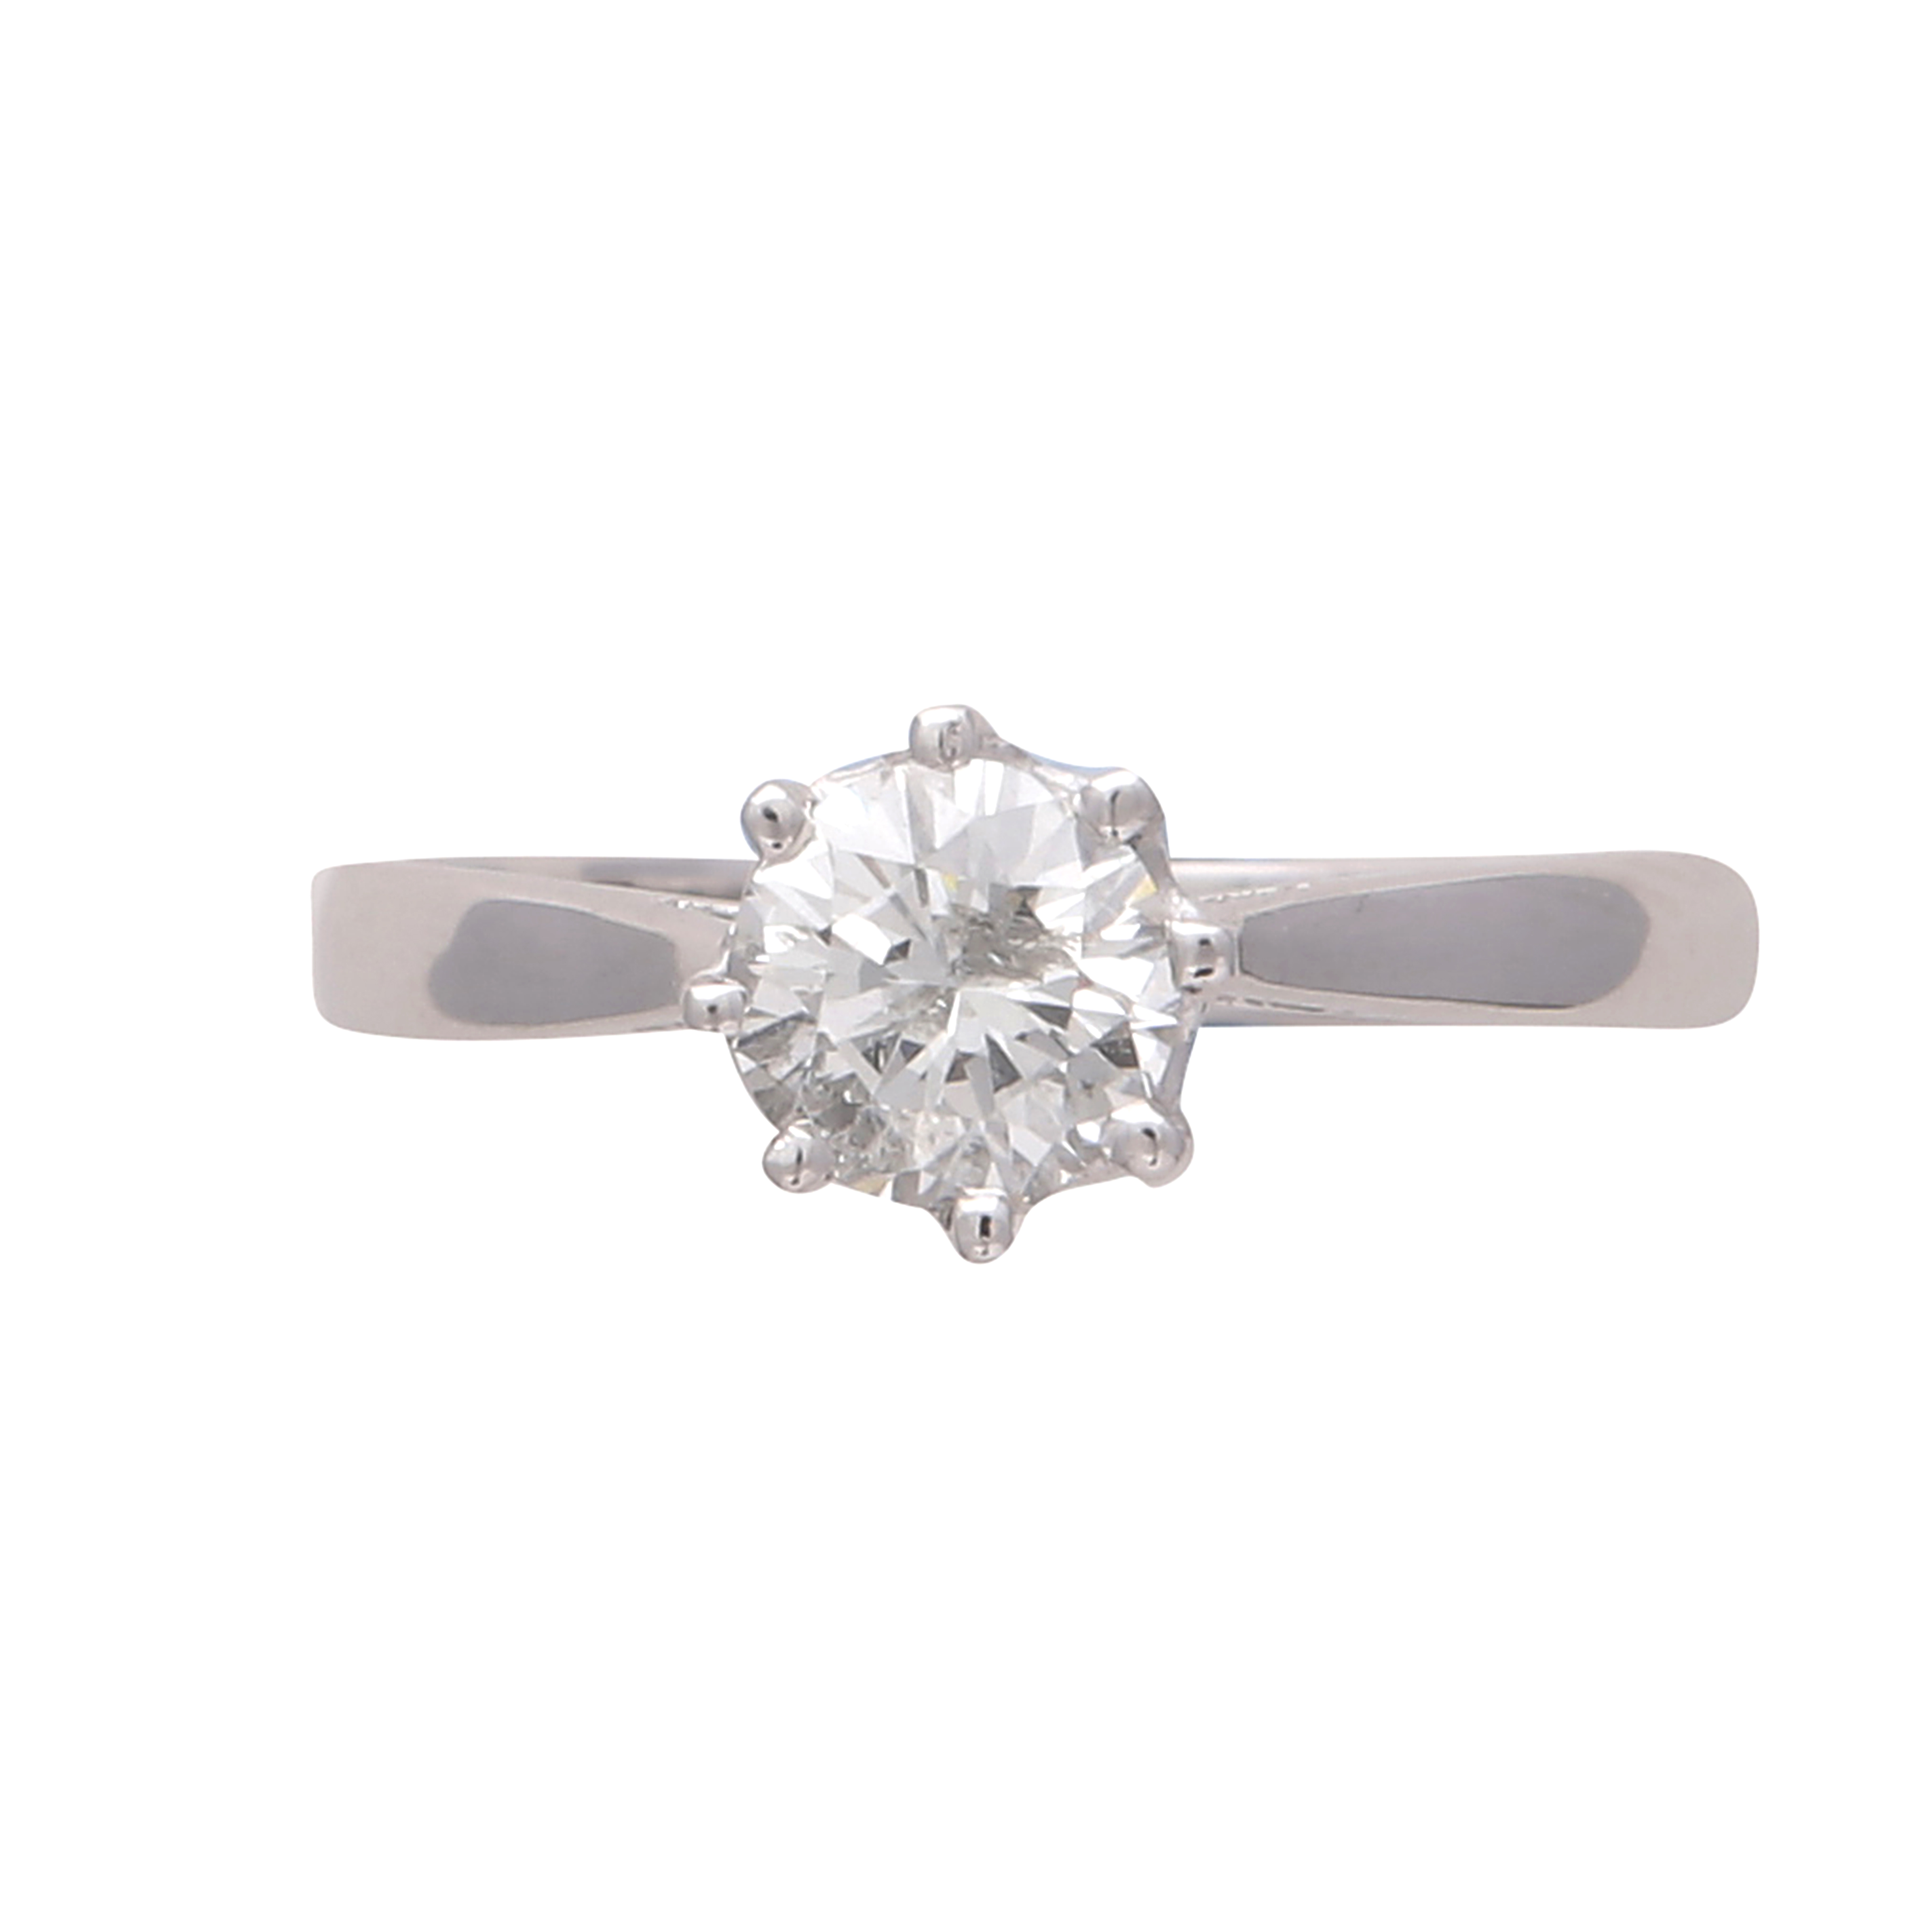 Los 184 - A solitaire diamond engagement ring in 18ct white gold the claw set round cut diamond weighing